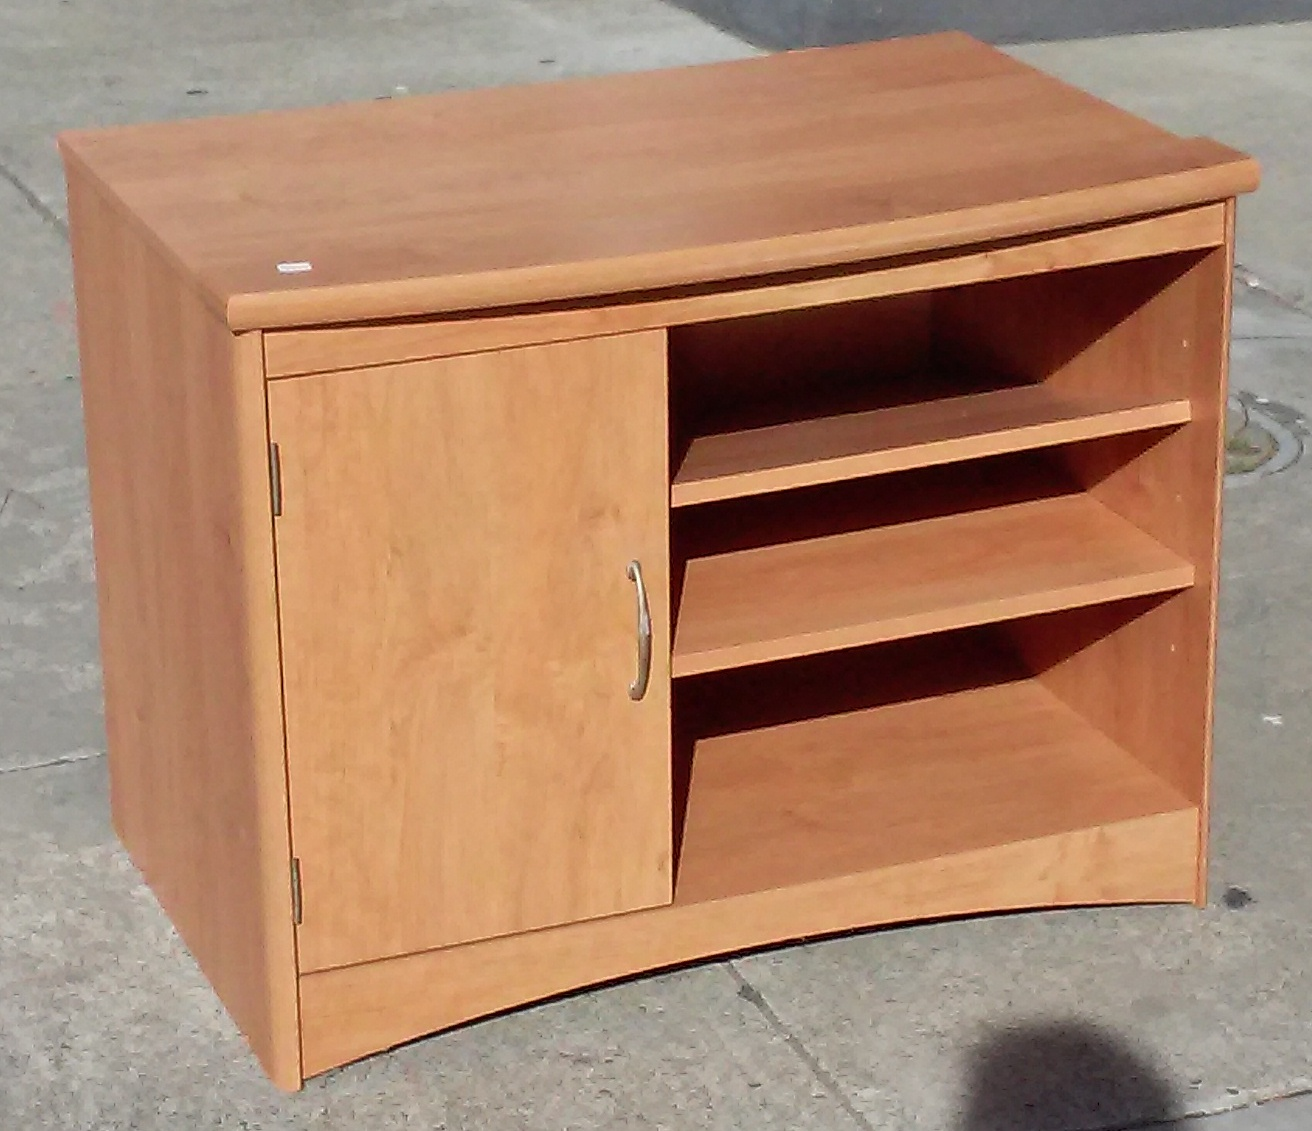 uhuru furniture collectibles sold 11551 cherry effect 36 x 24 tall tv stand 25. Black Bedroom Furniture Sets. Home Design Ideas